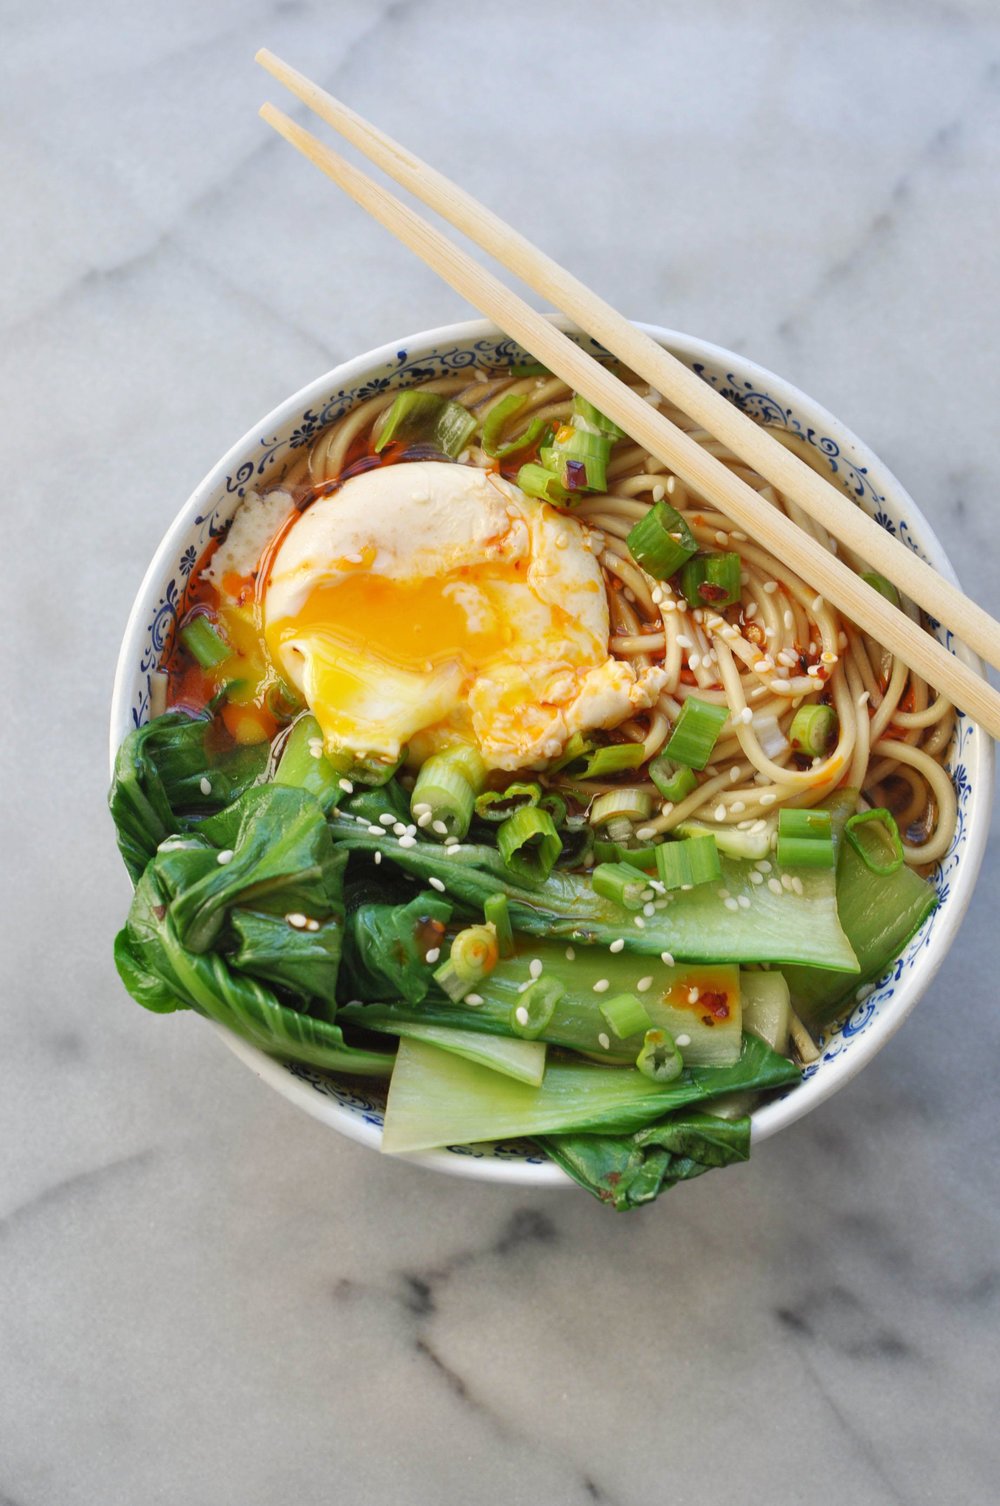 Miso Ramen with Bok Choy and Chili Oil | Shiny Happy Bright